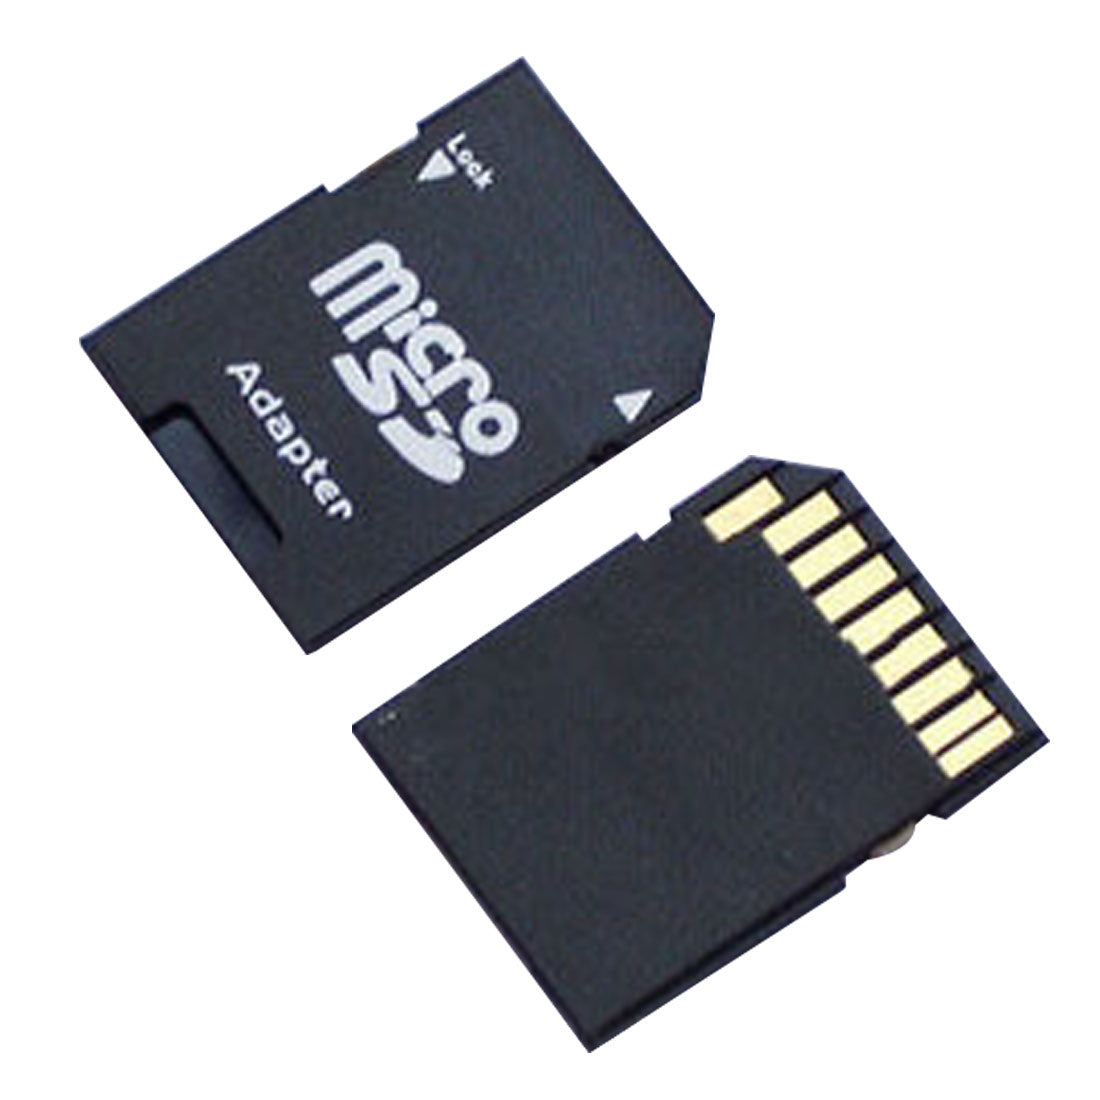 NOYOKERE 2PCS  Popular Micro SD TransFlash TF to SD SDHC Memory Card Adapter Convert into SD Card